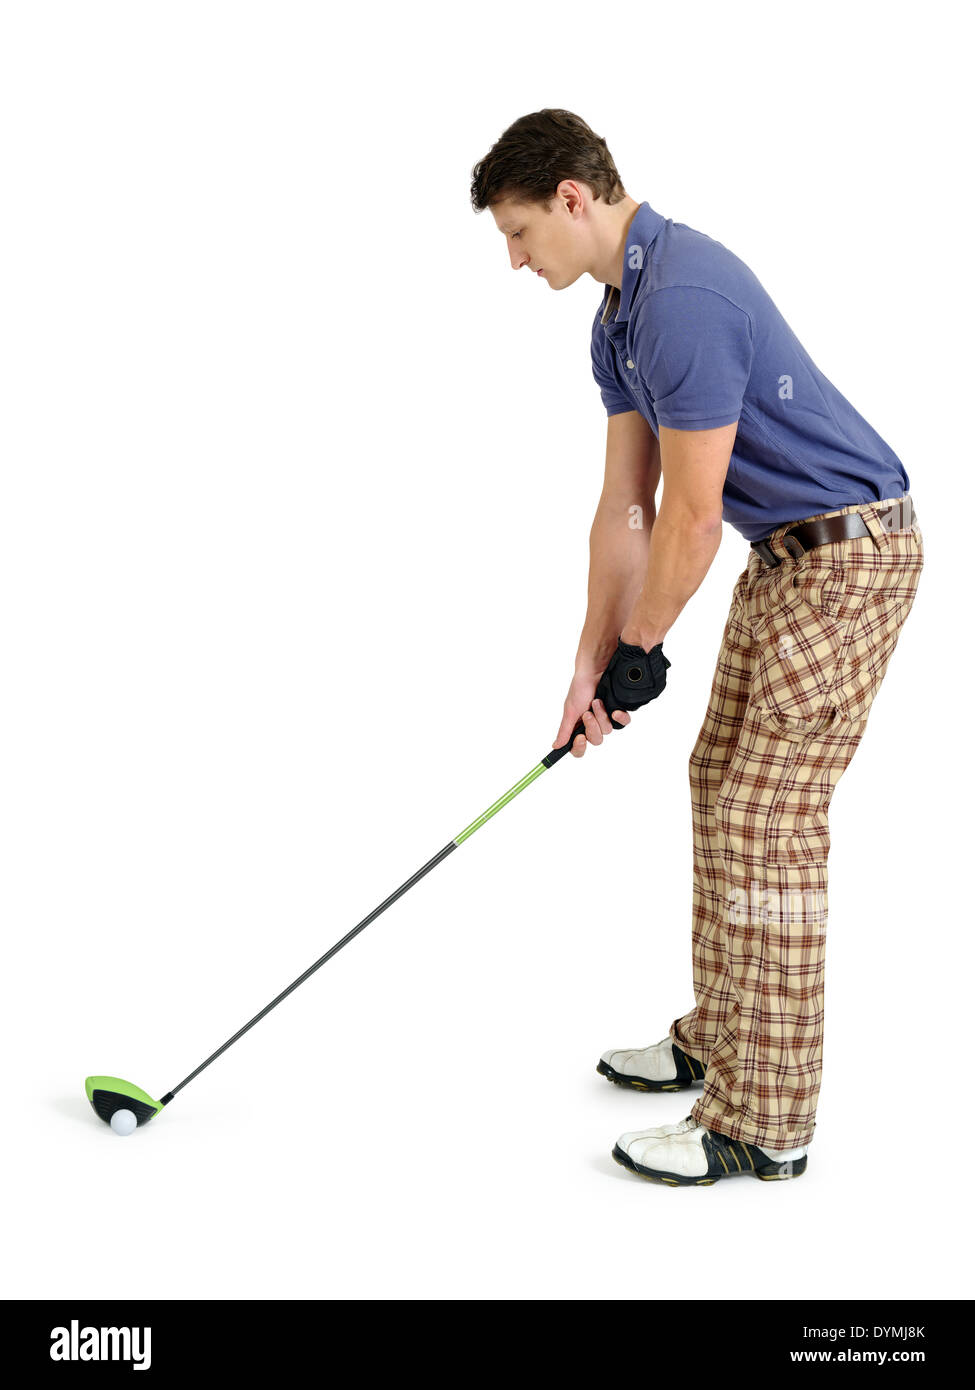 Photo of a male golfer in his late twenties about to swing his driver. - Stock Image